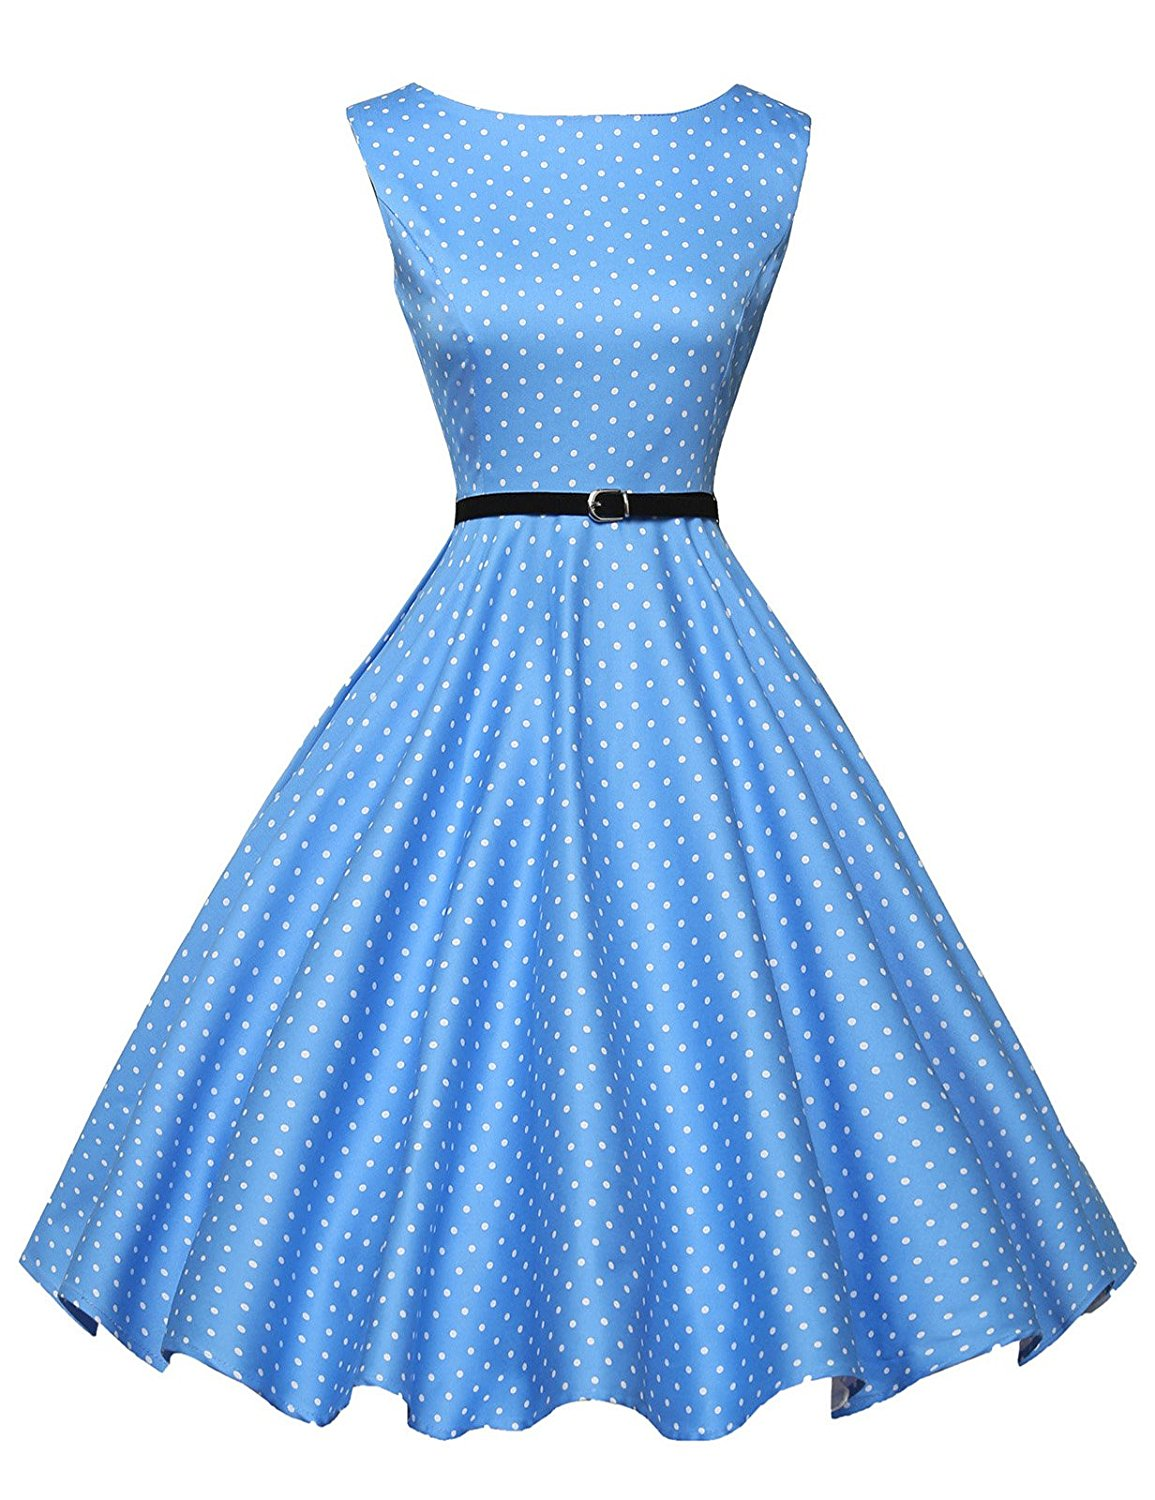 Off to the lake... - This dress will take you from company picnics to evening cocktail parties.